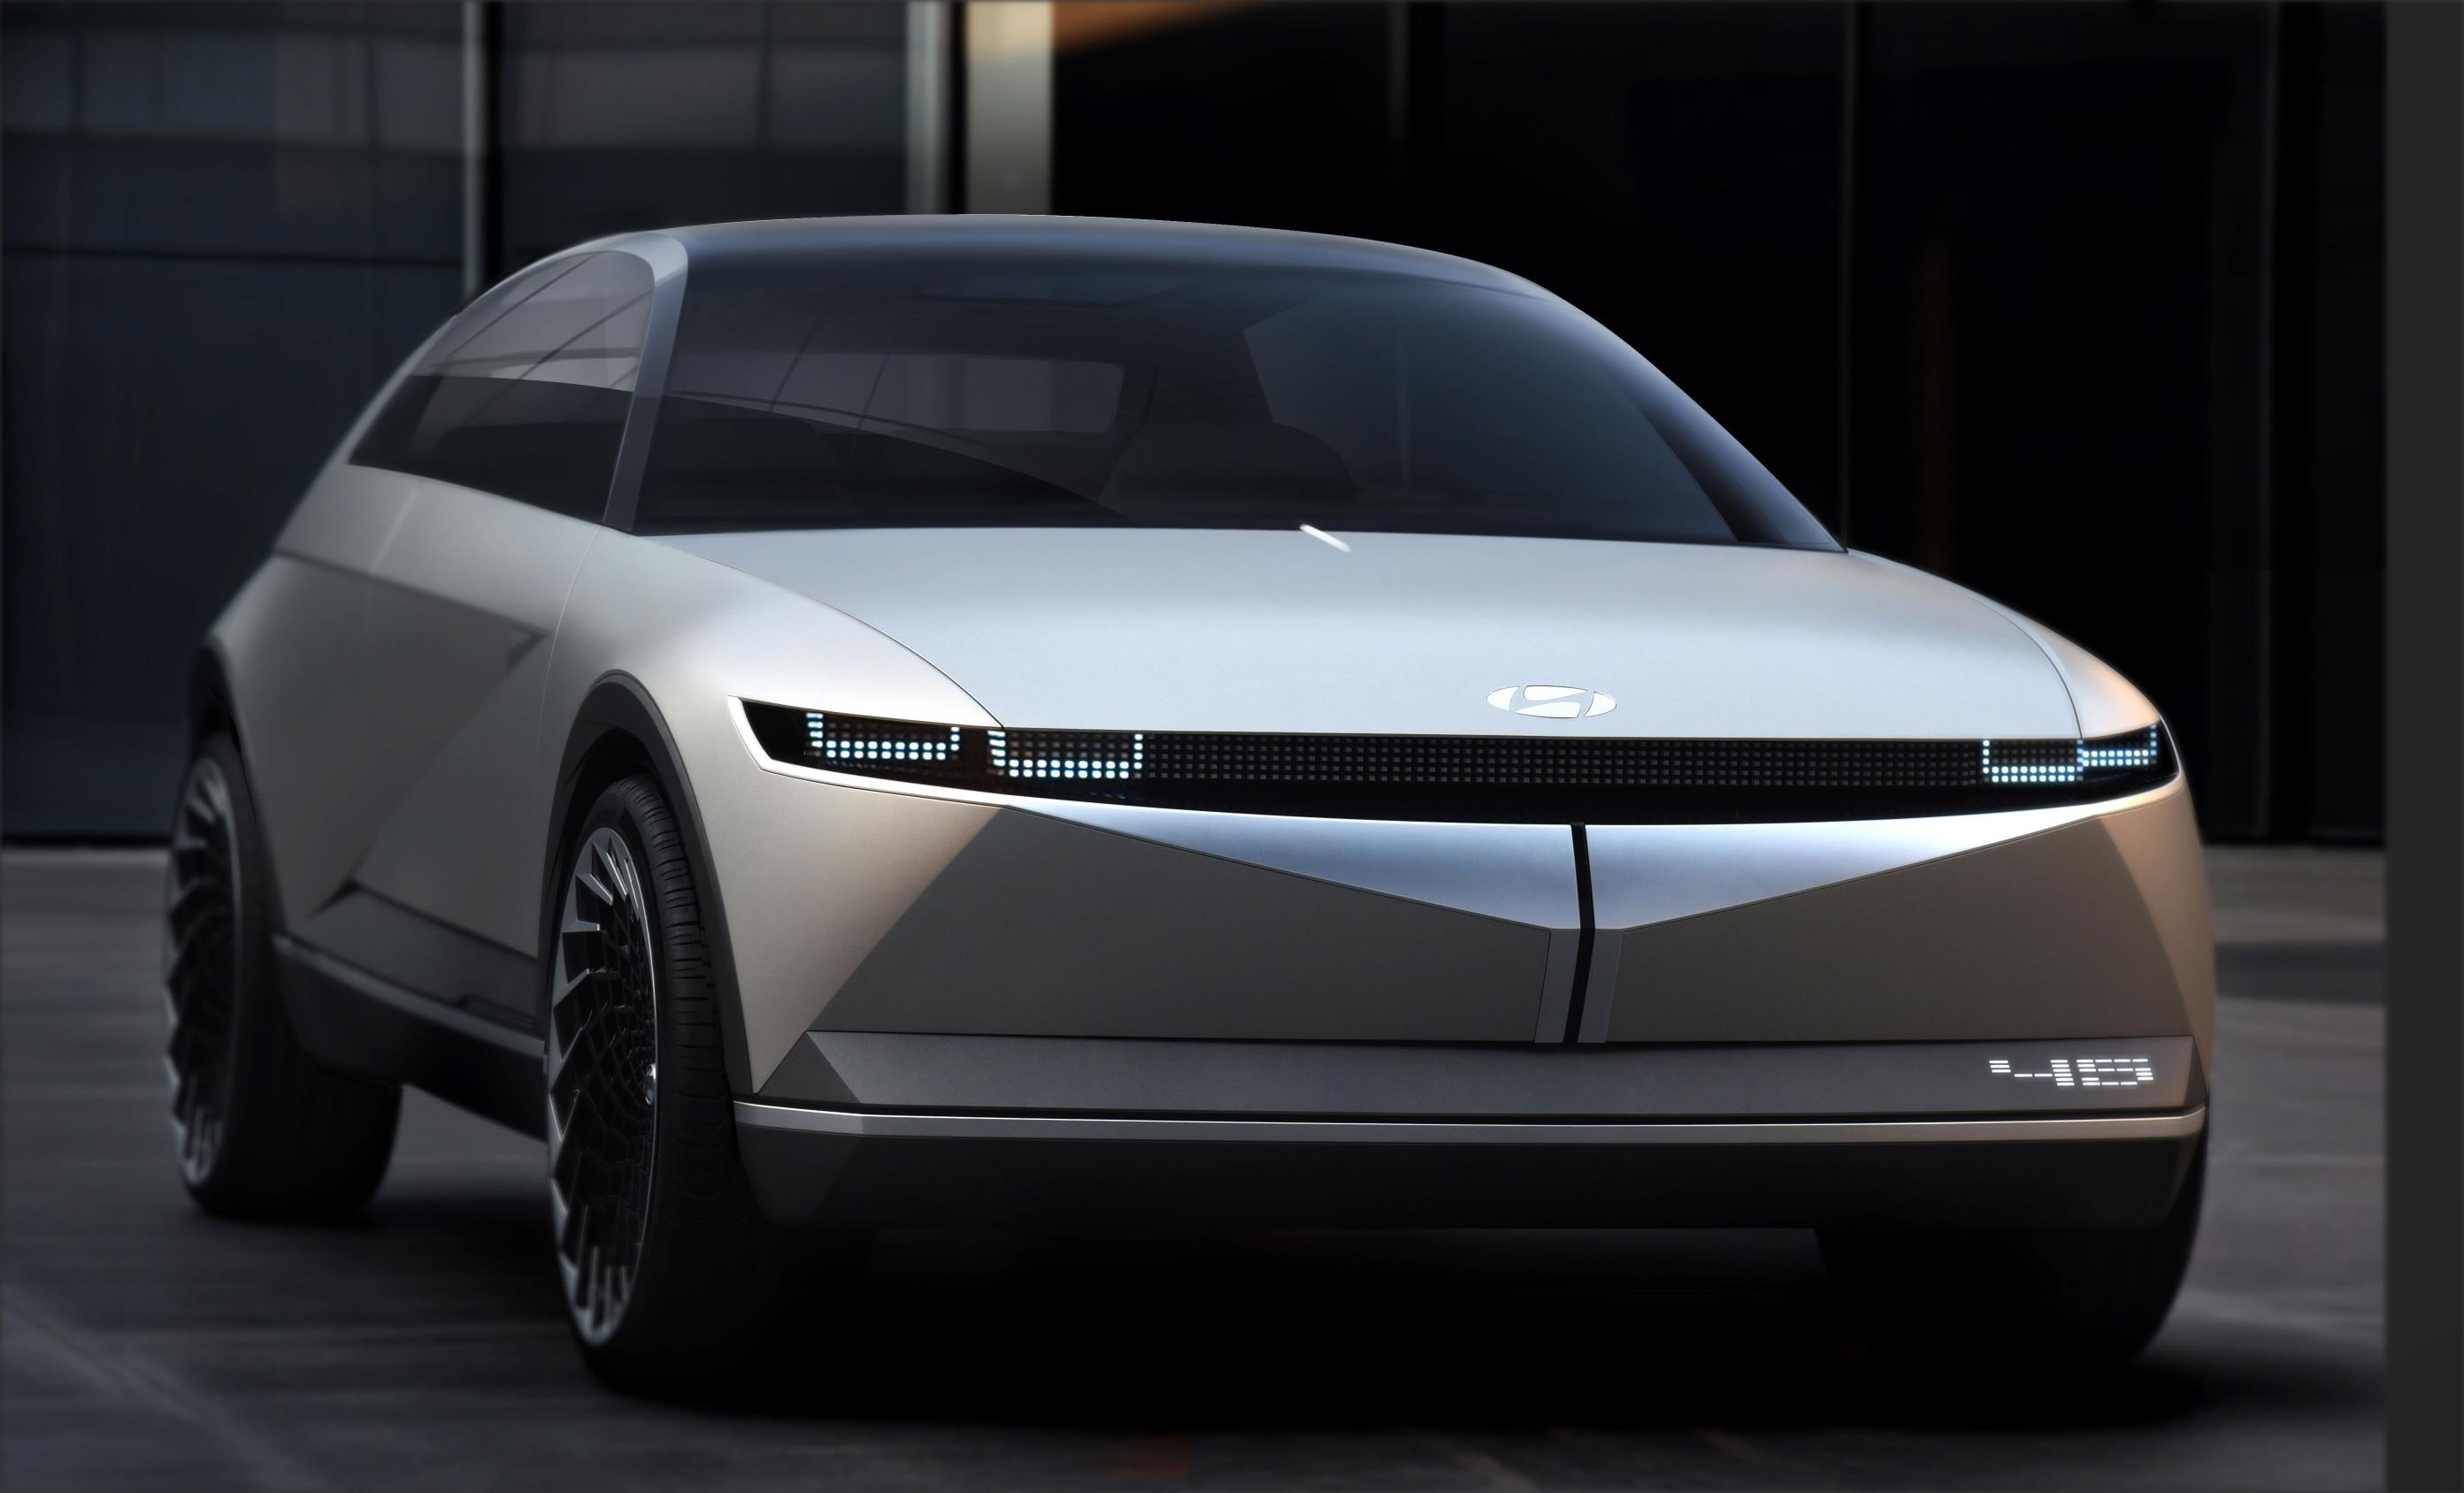 The Hyundai 45 Concept debuts an angular new look